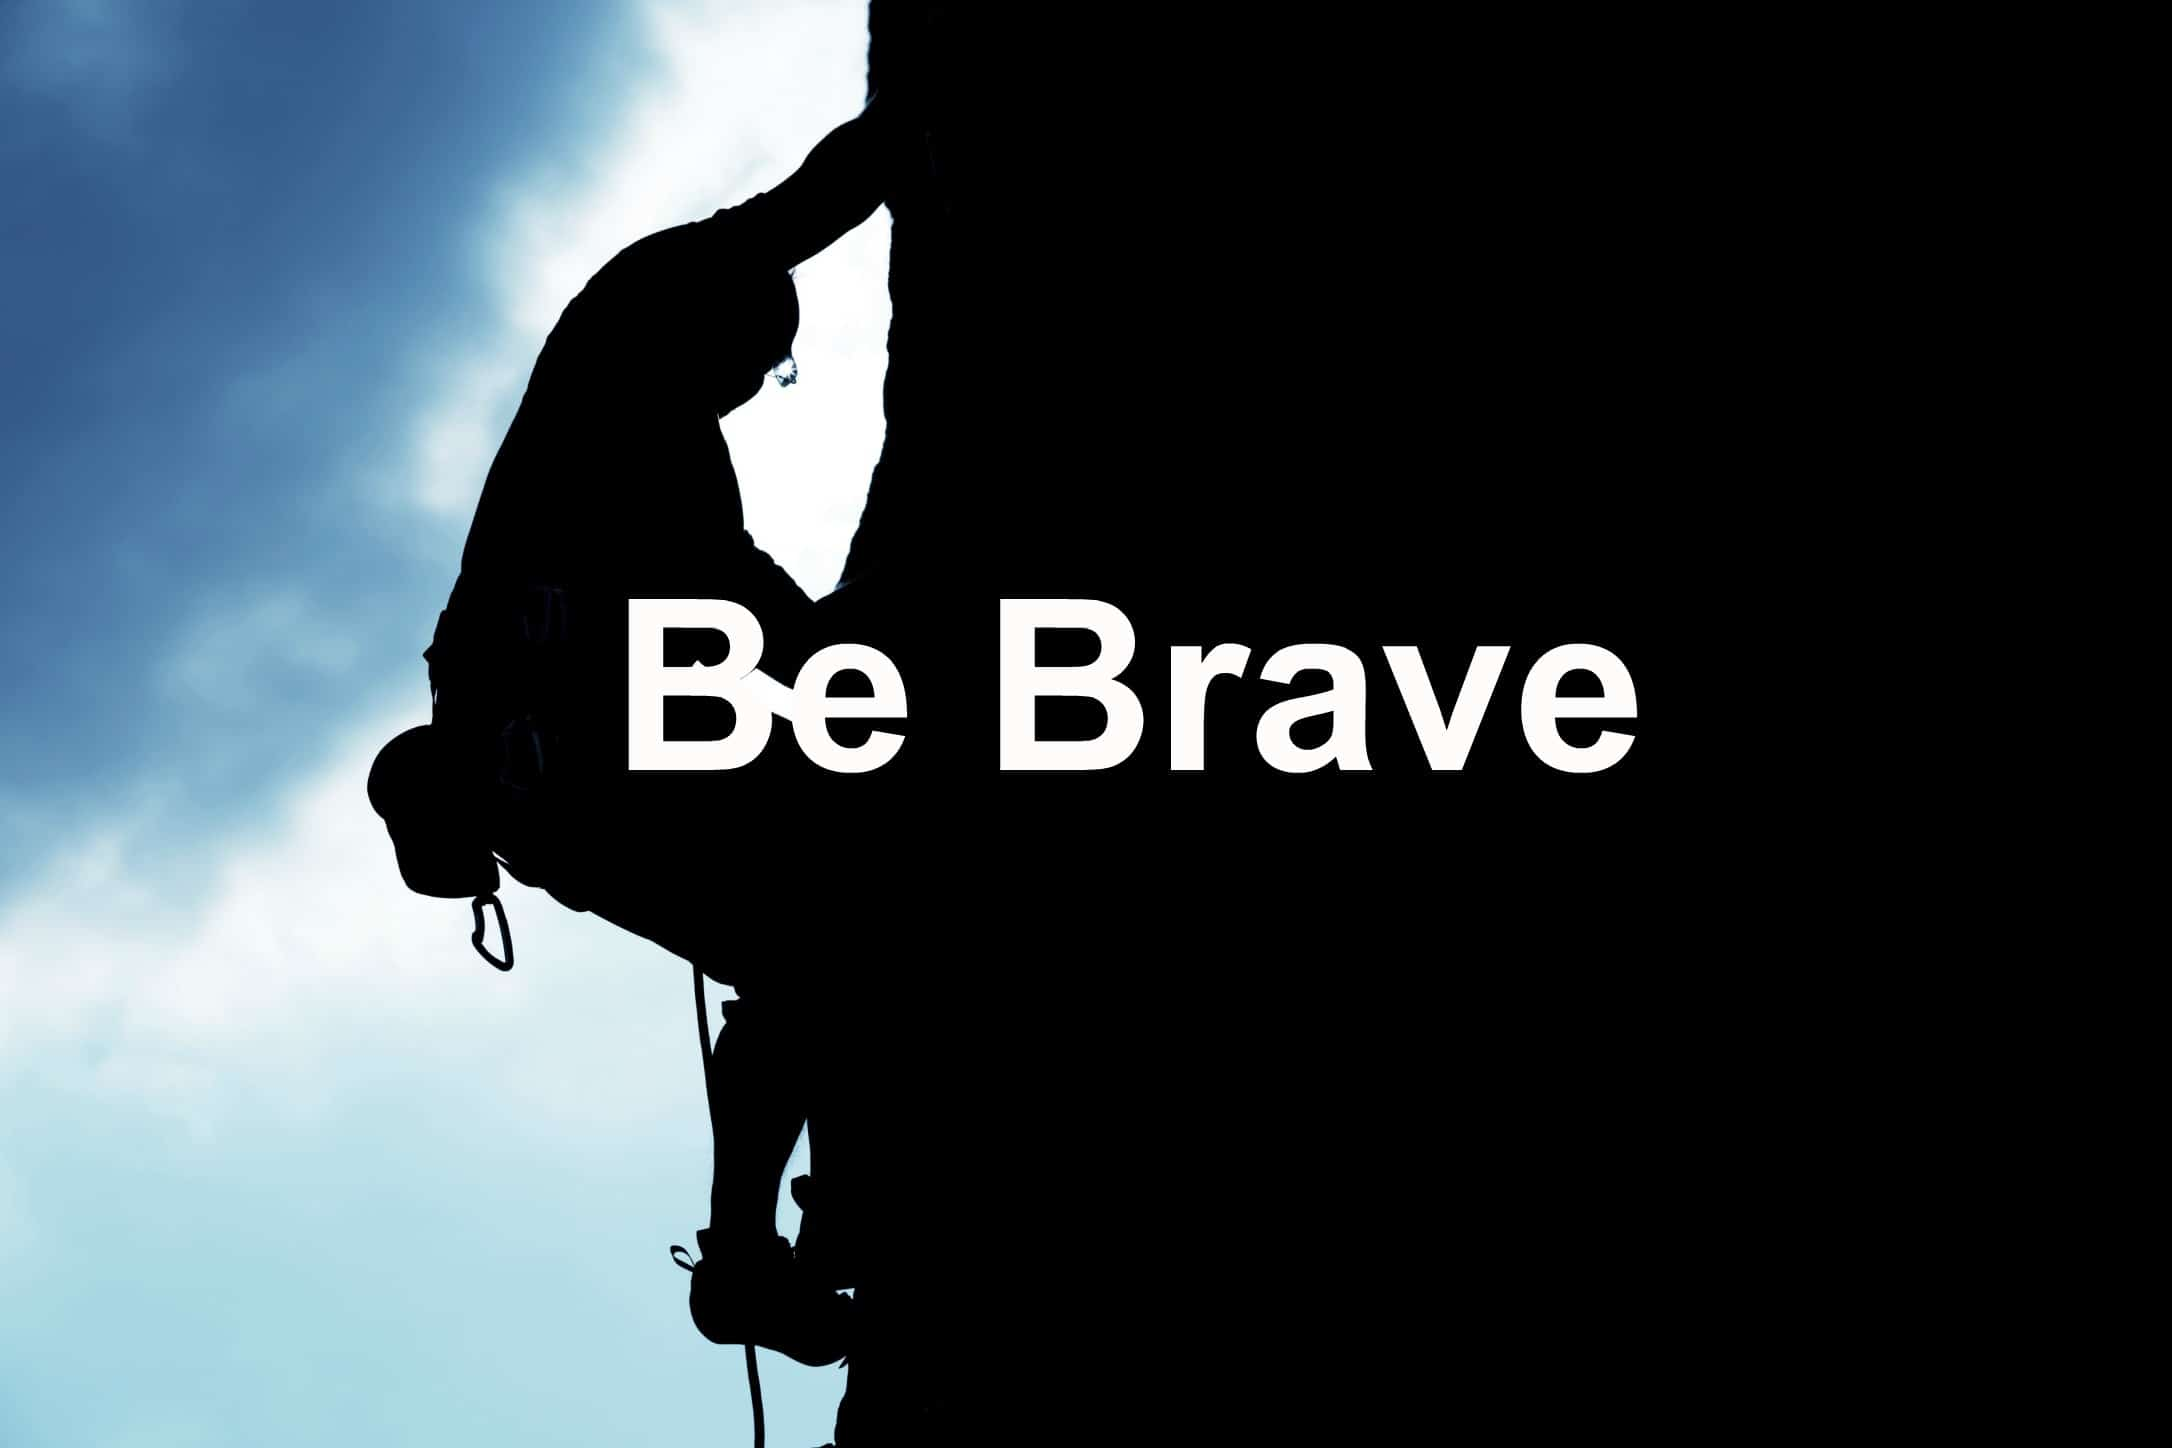 Bravery is the key